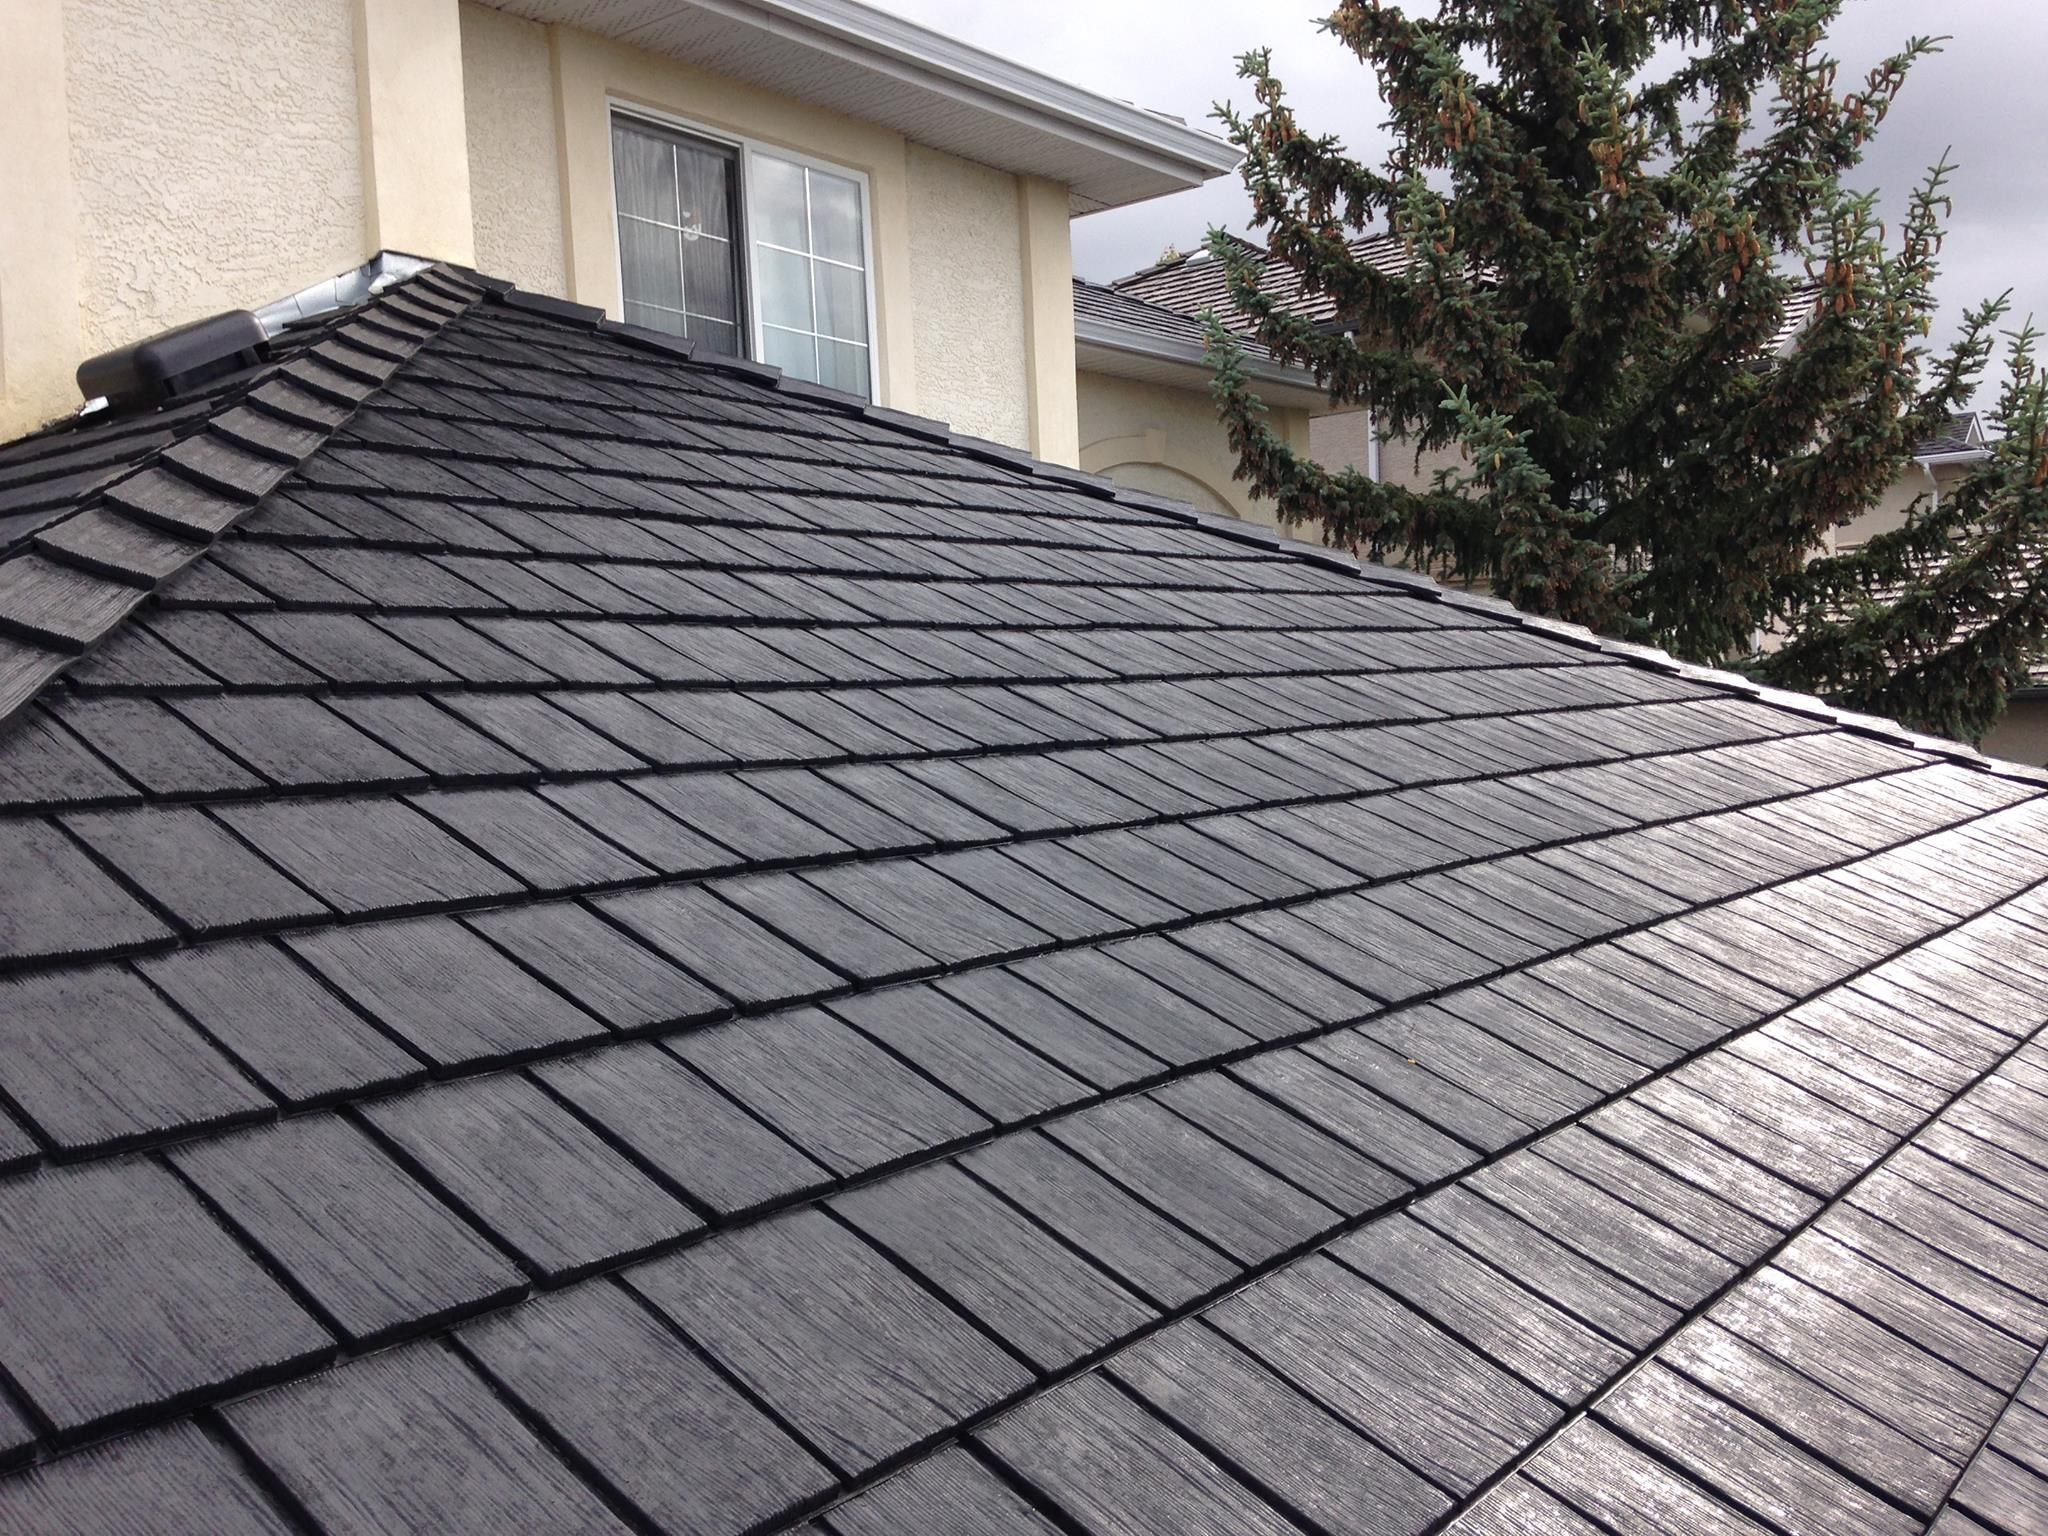 Beaumont Shake In Black Shake Black Roof Roofing Roofingmaterial Roofingproducts Renos Contractor Canadi House Roof Design Fibreglass Roof Roof Design